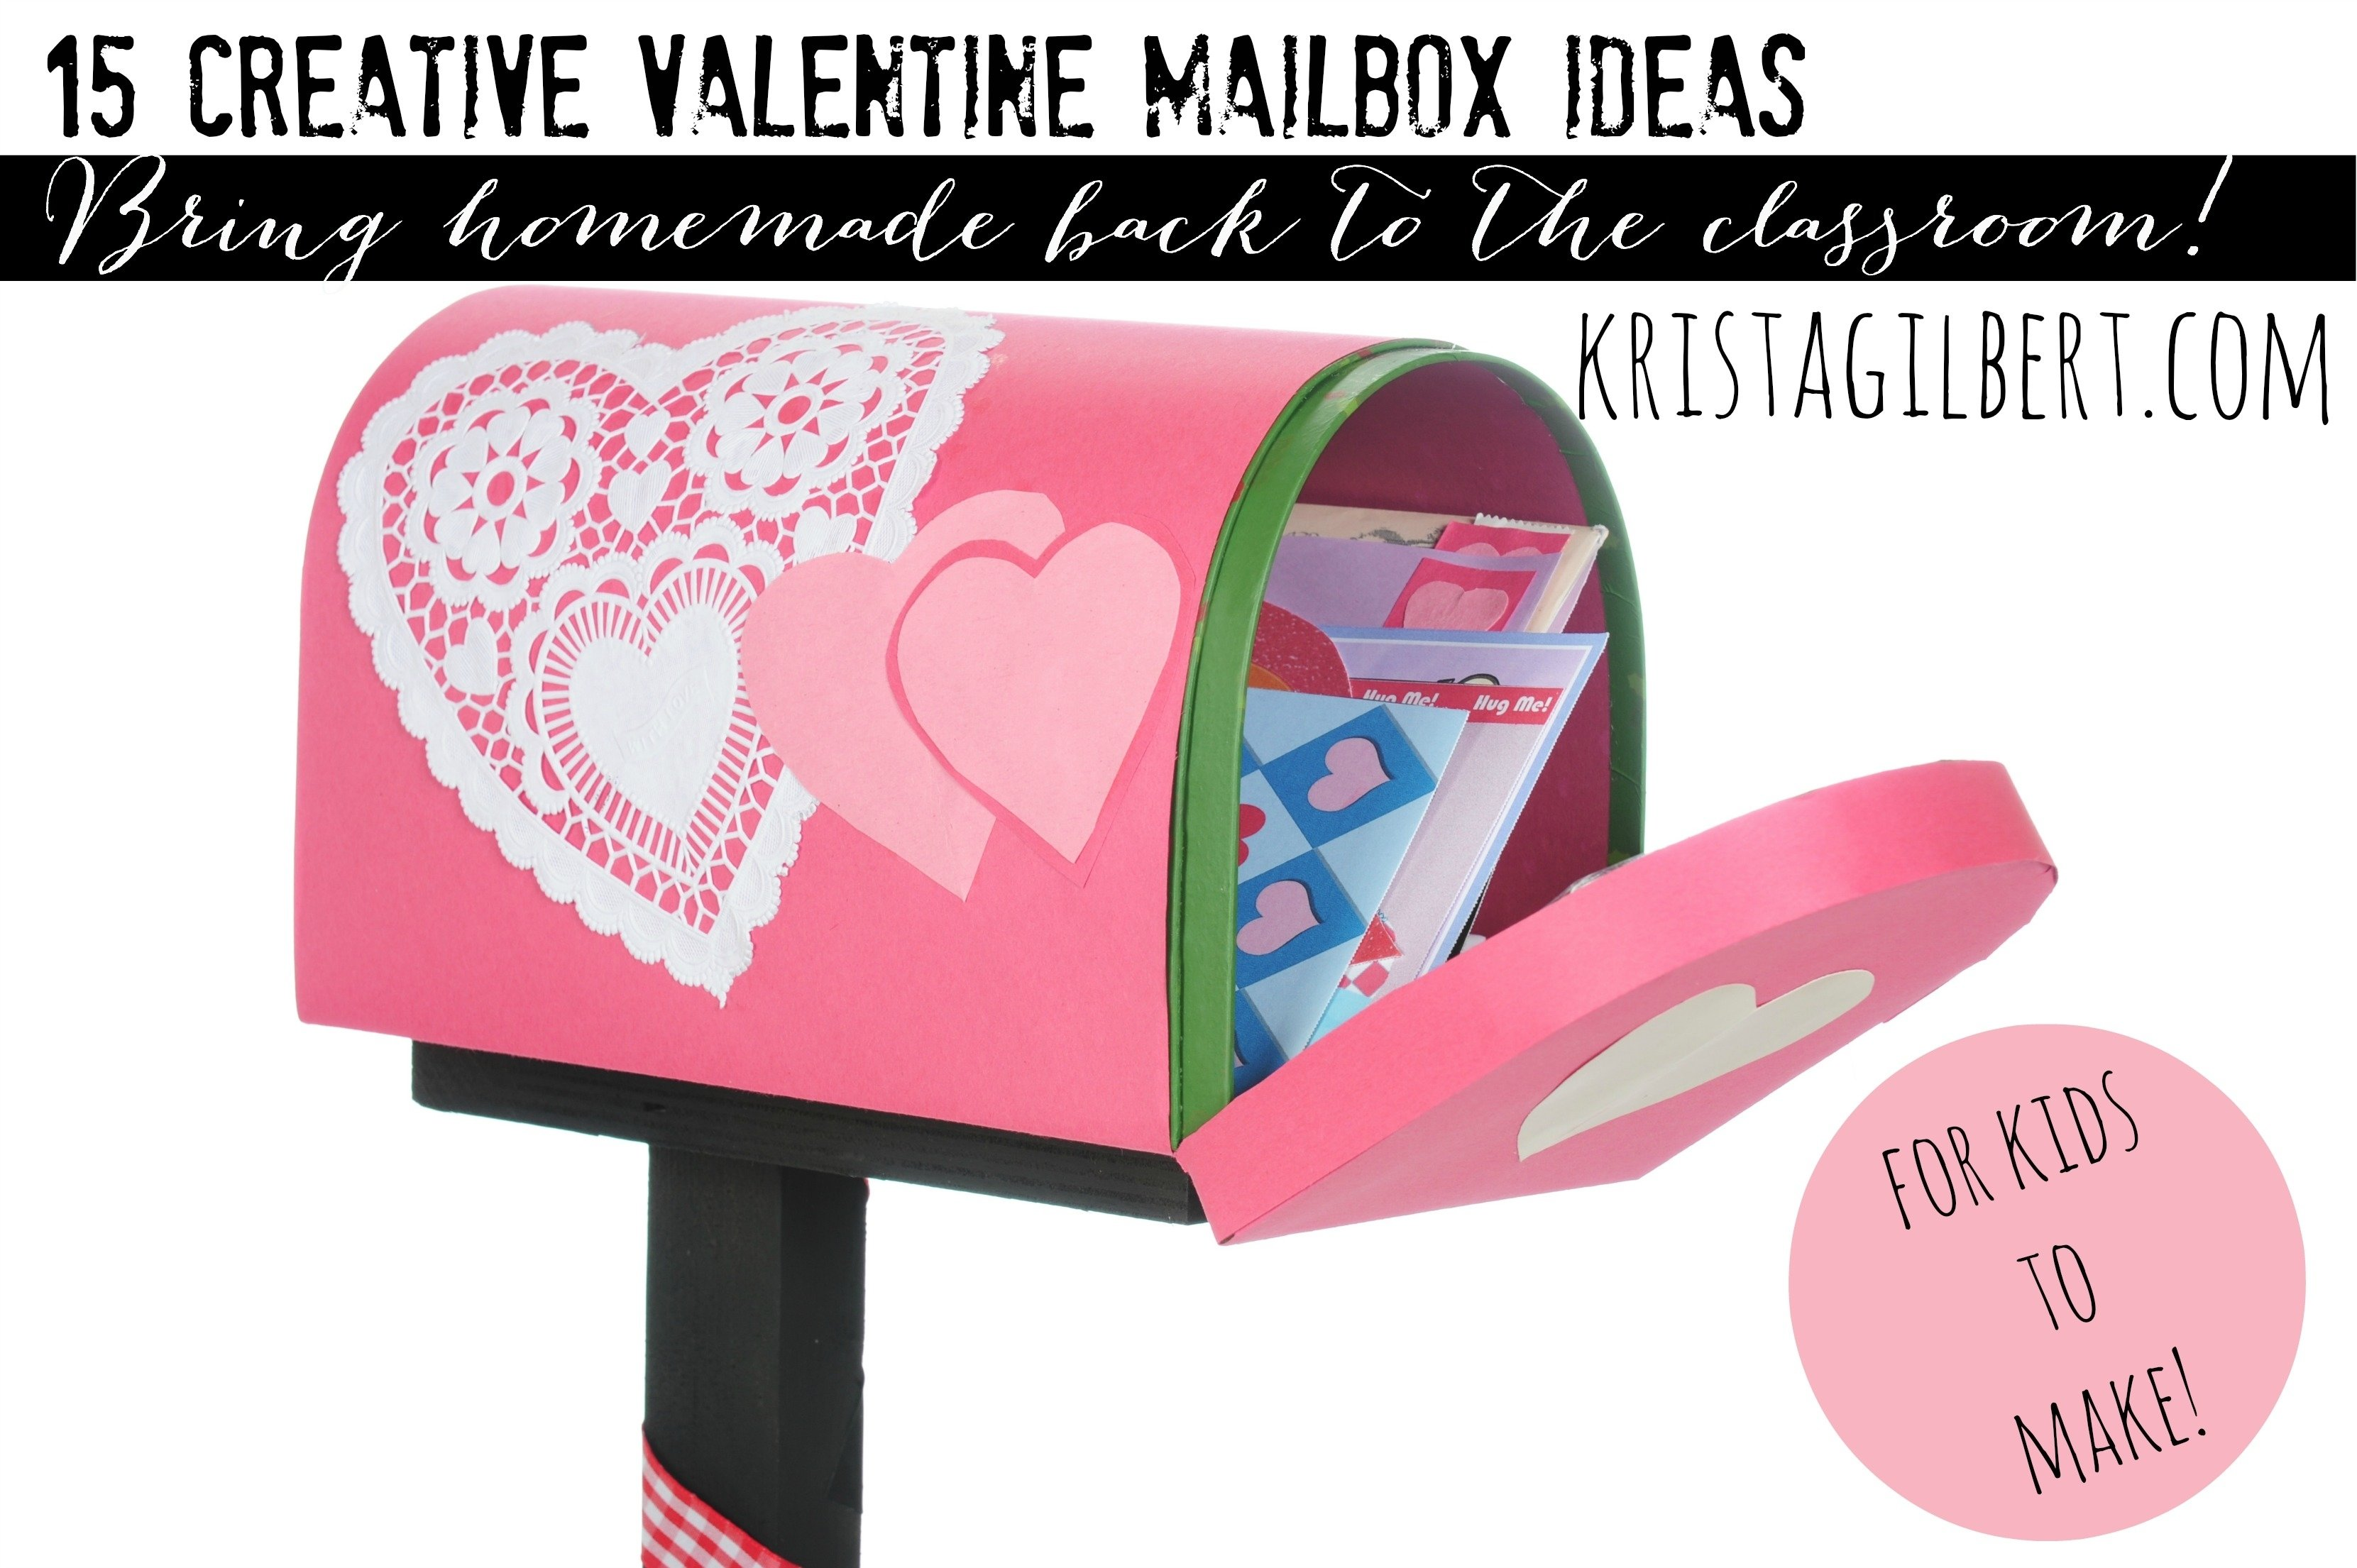 10 Most Popular Ideas For Valentines Day Boxes For School fab valentines day box ideas for kids krista gilbert